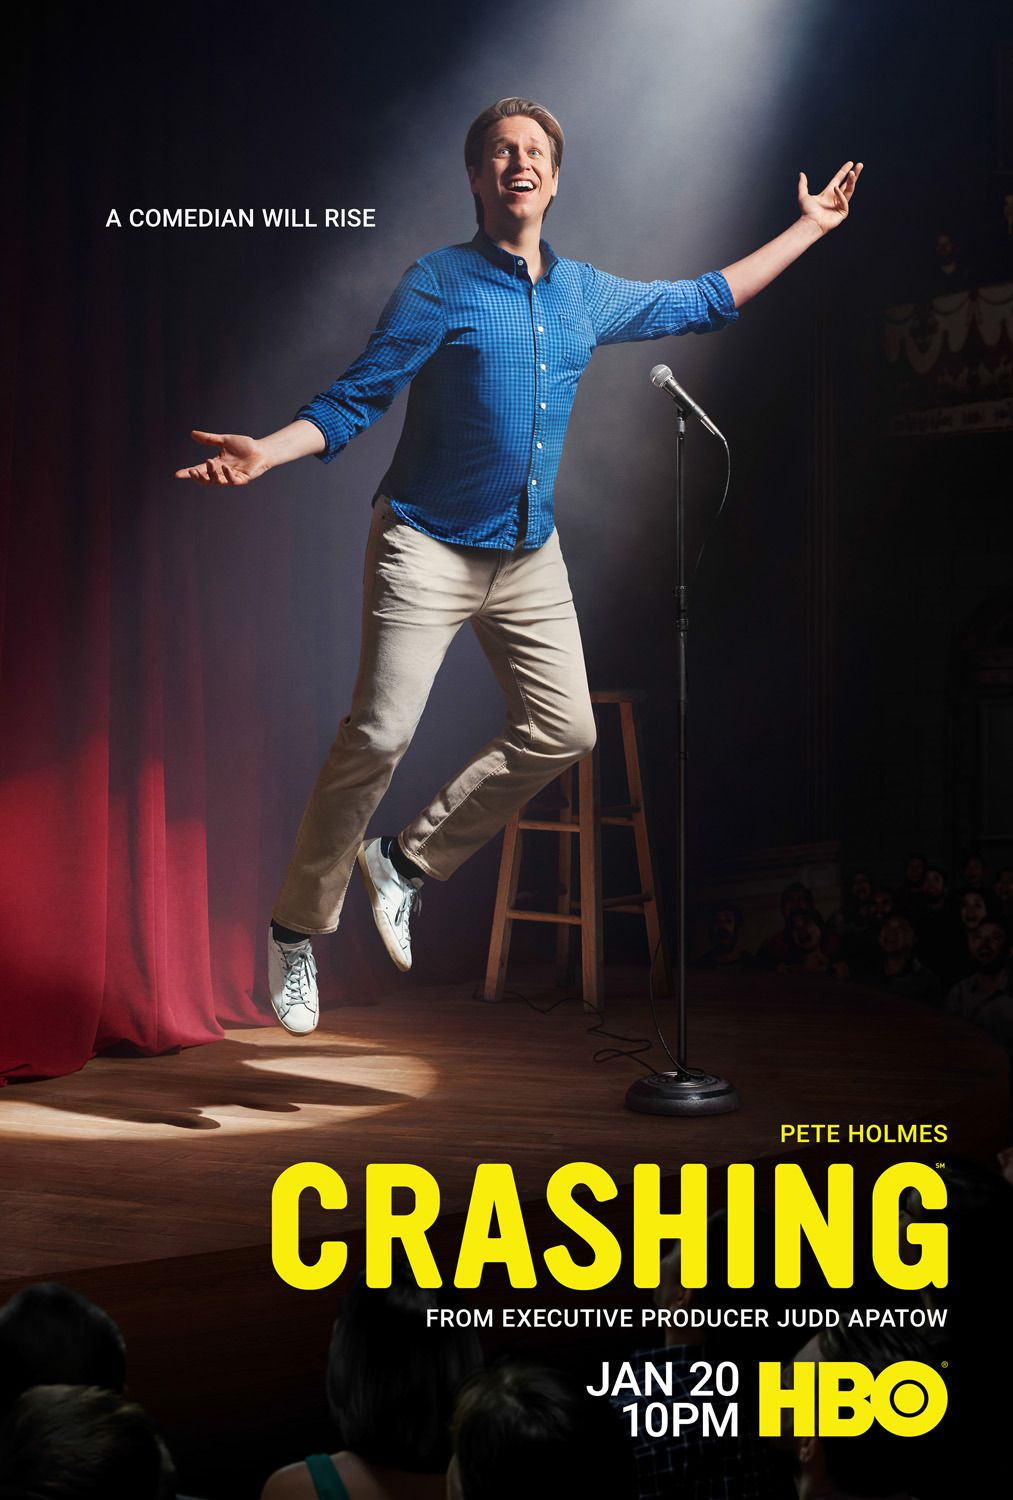 Crashing Tv Series 2017 Pete Holmes New Movies